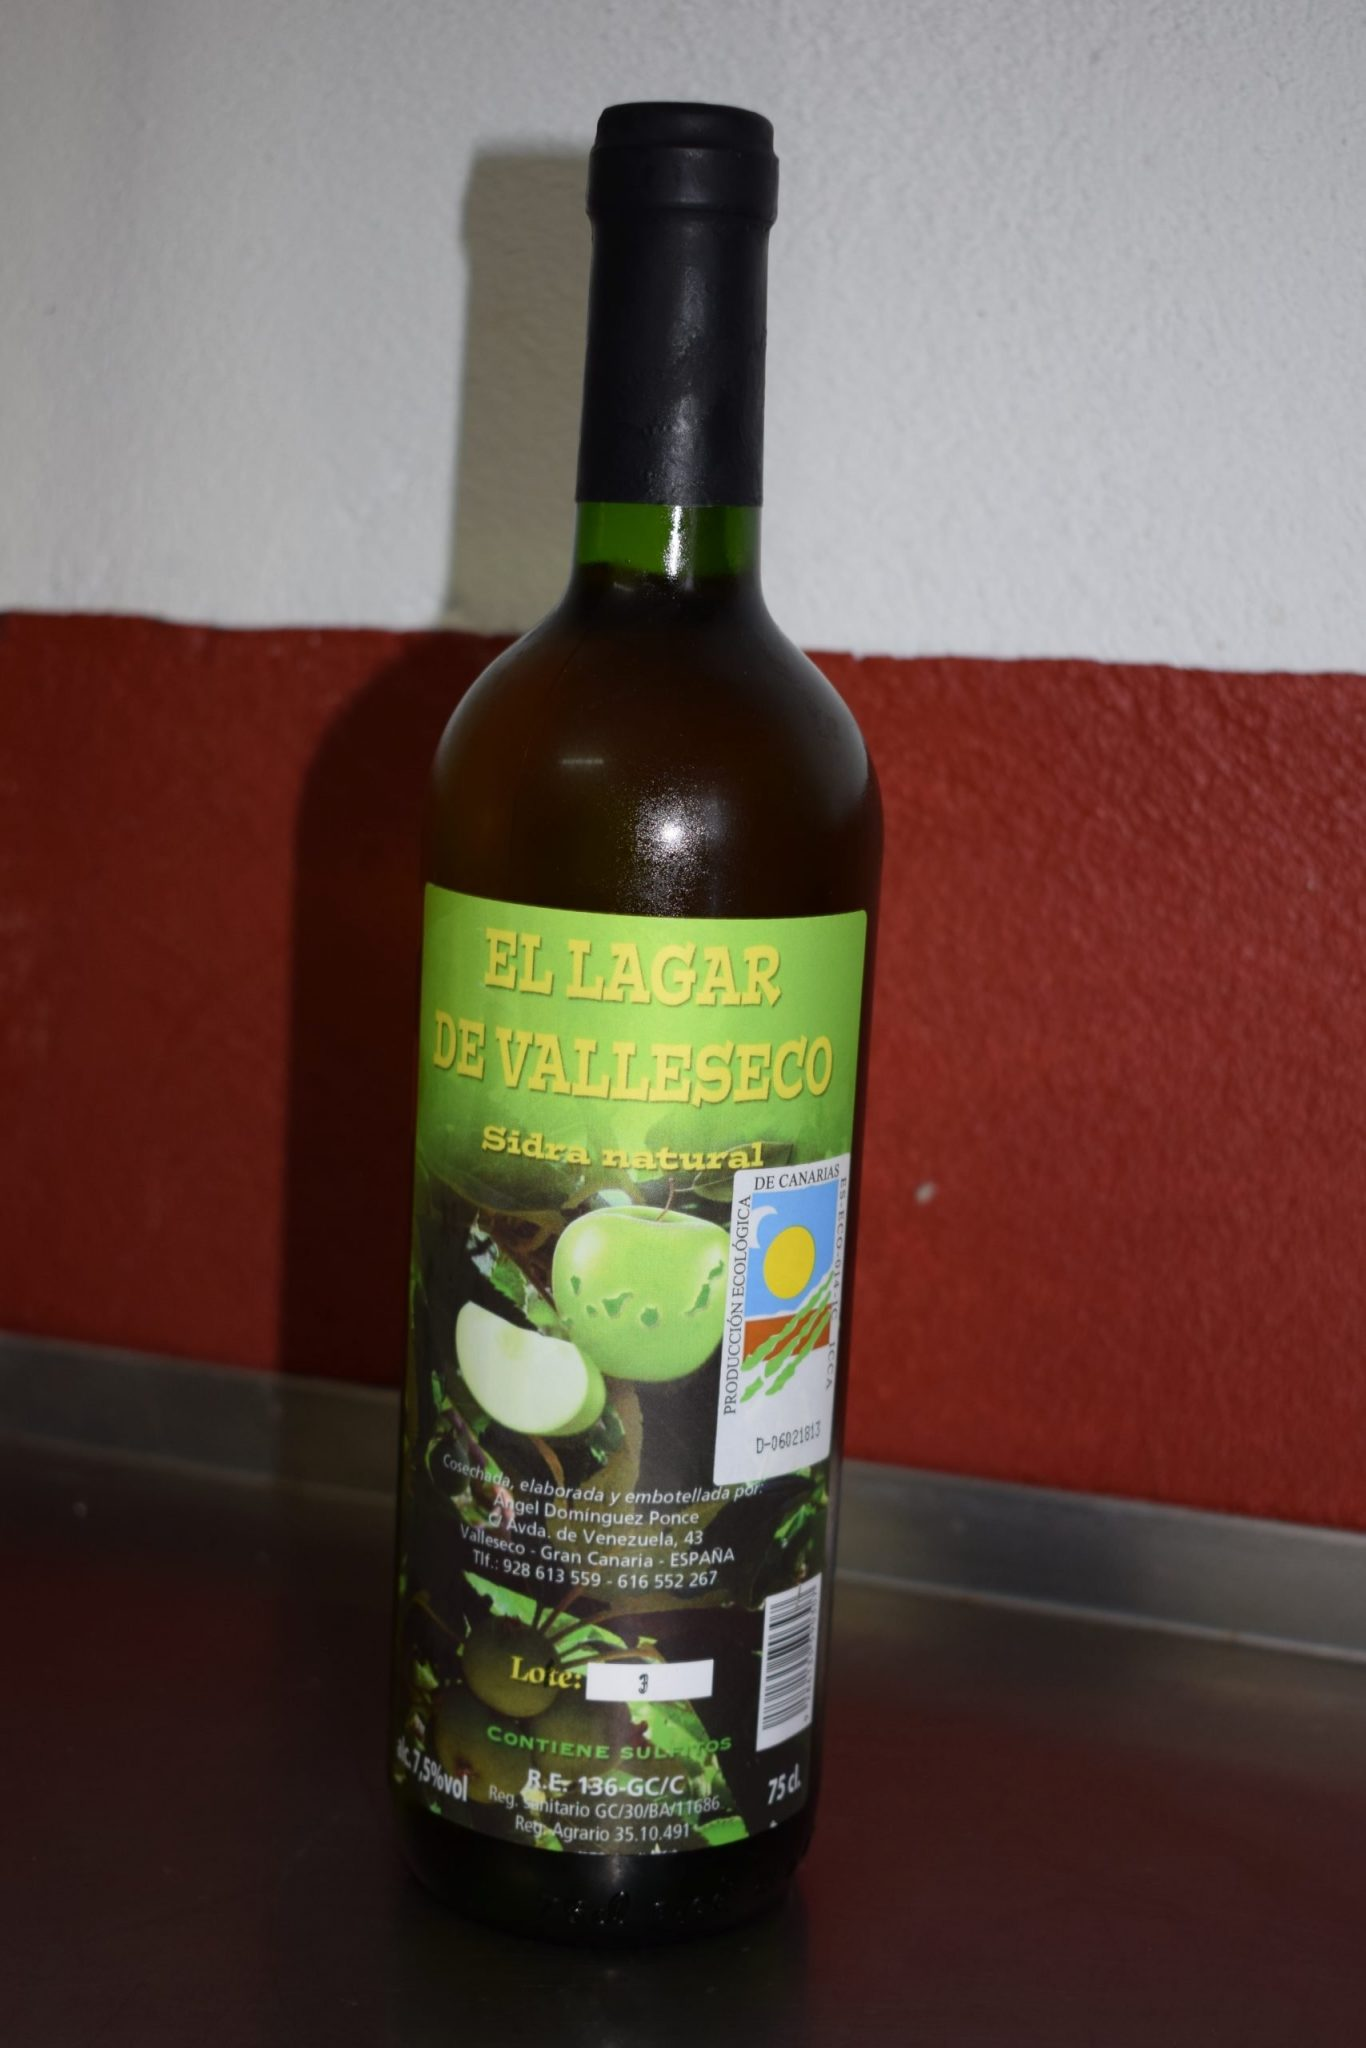 A bottle of cider with the label